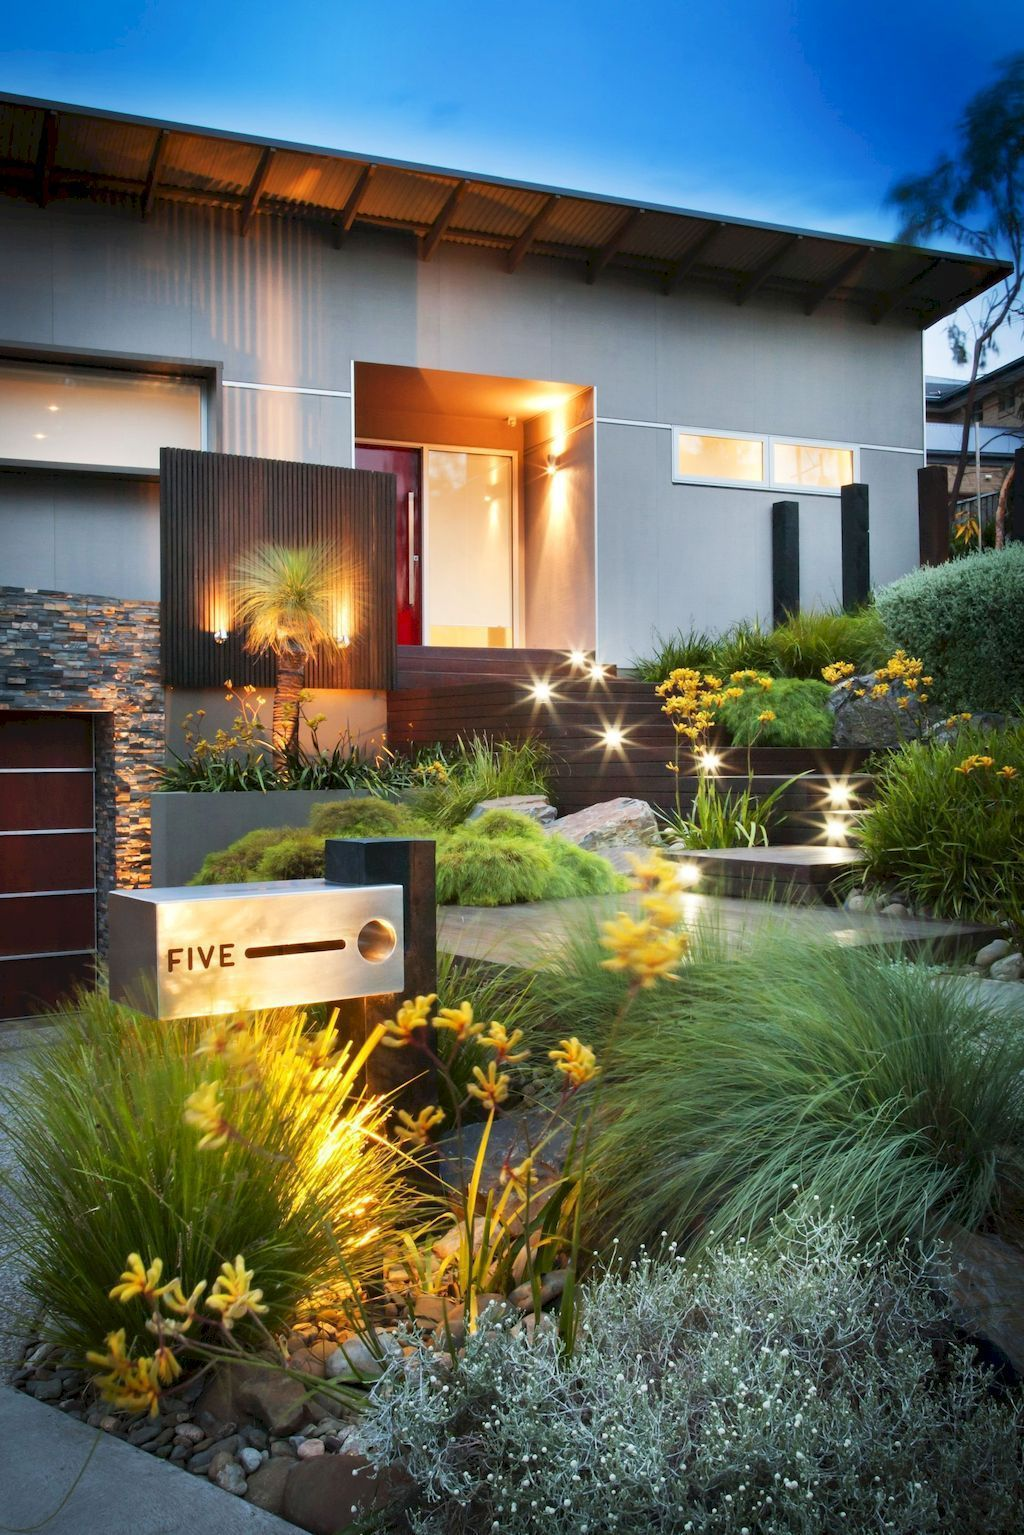 50 Modern Front Yard Designs And Ideas: 60 Low Maintenance Front Yard Landscaping Ideas